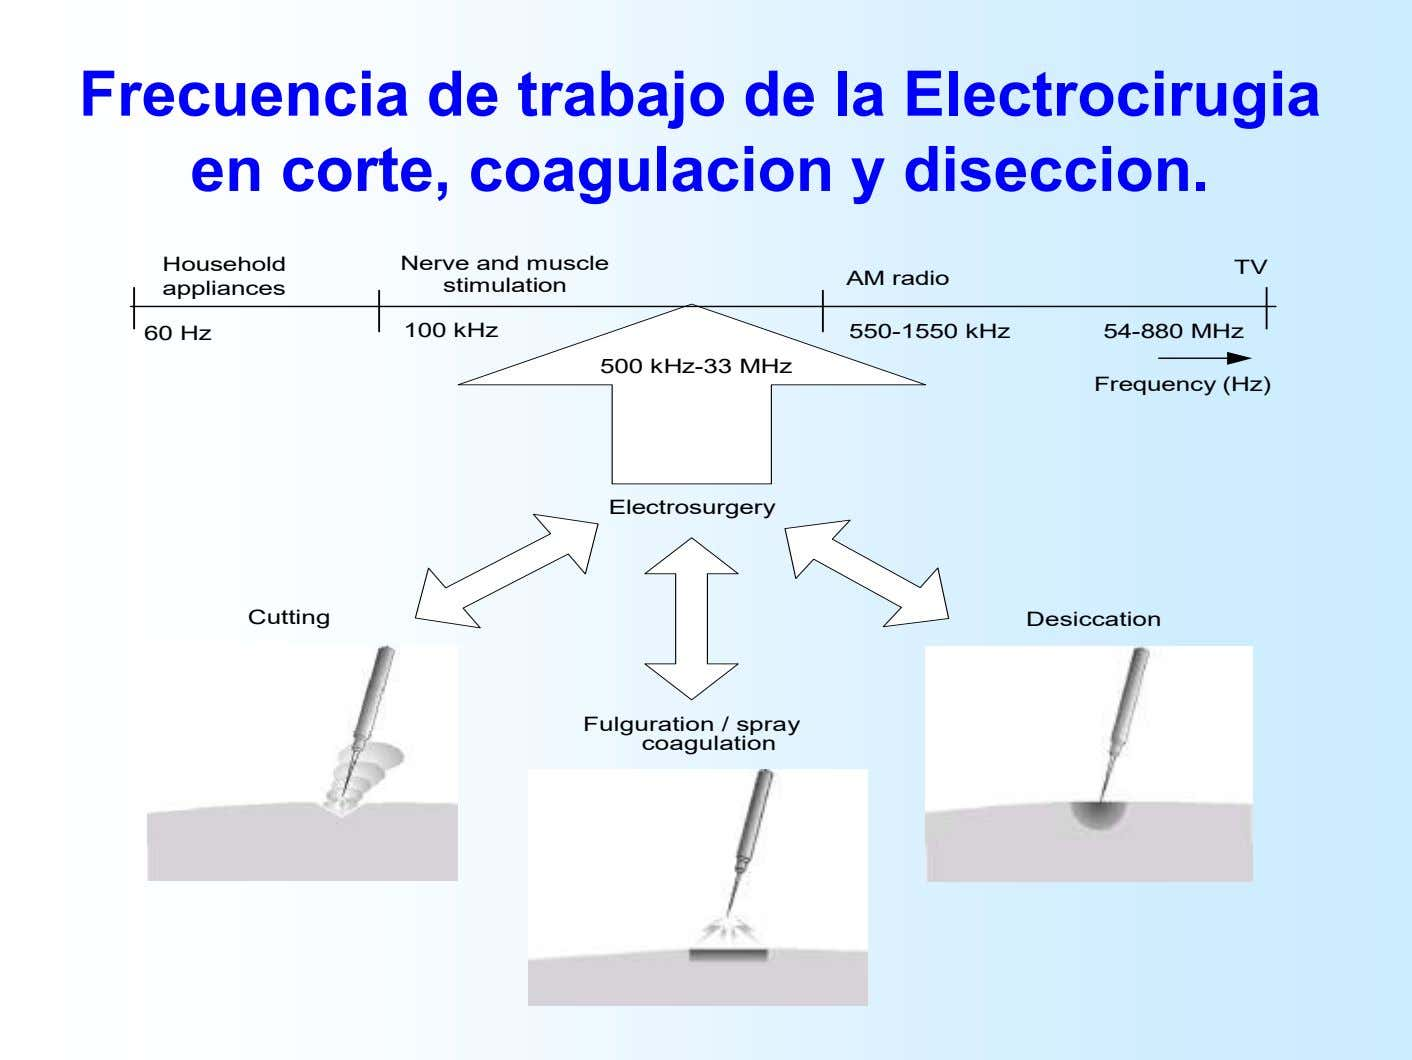 Frecuencia de trabajo de la Electrocirugia en corte, coagulacion y diseccion. Household appliances Nerve and